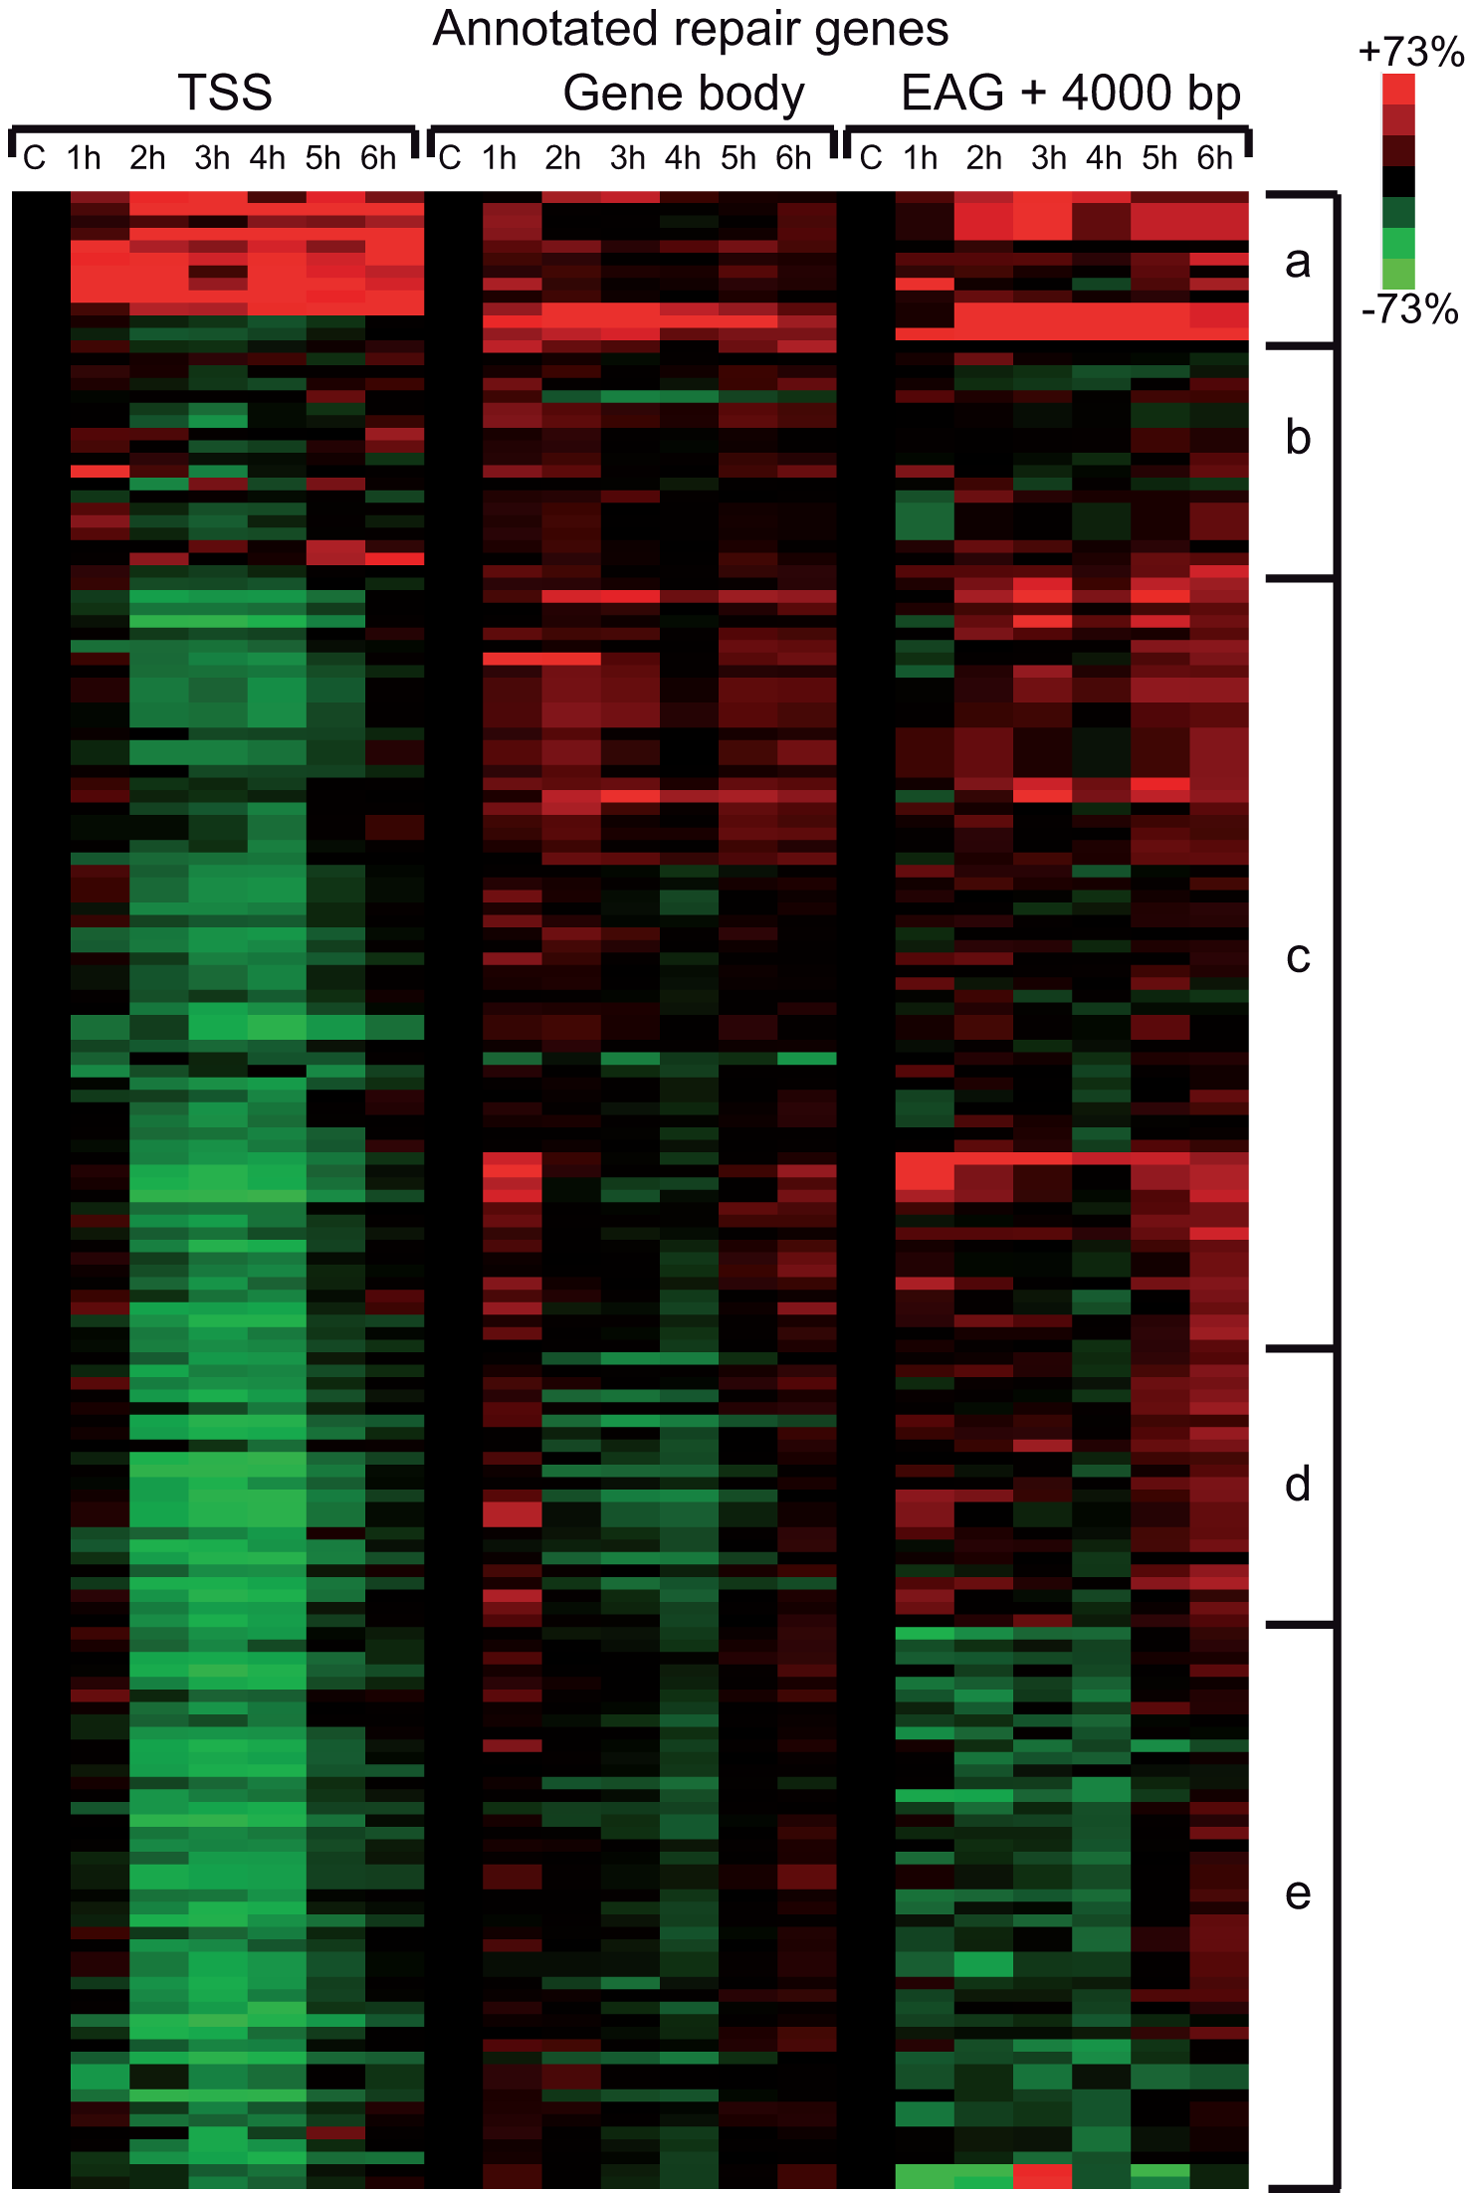 Pol II behavior on annotated DNA damage repair and UV responsive genes after UVB irradiation.